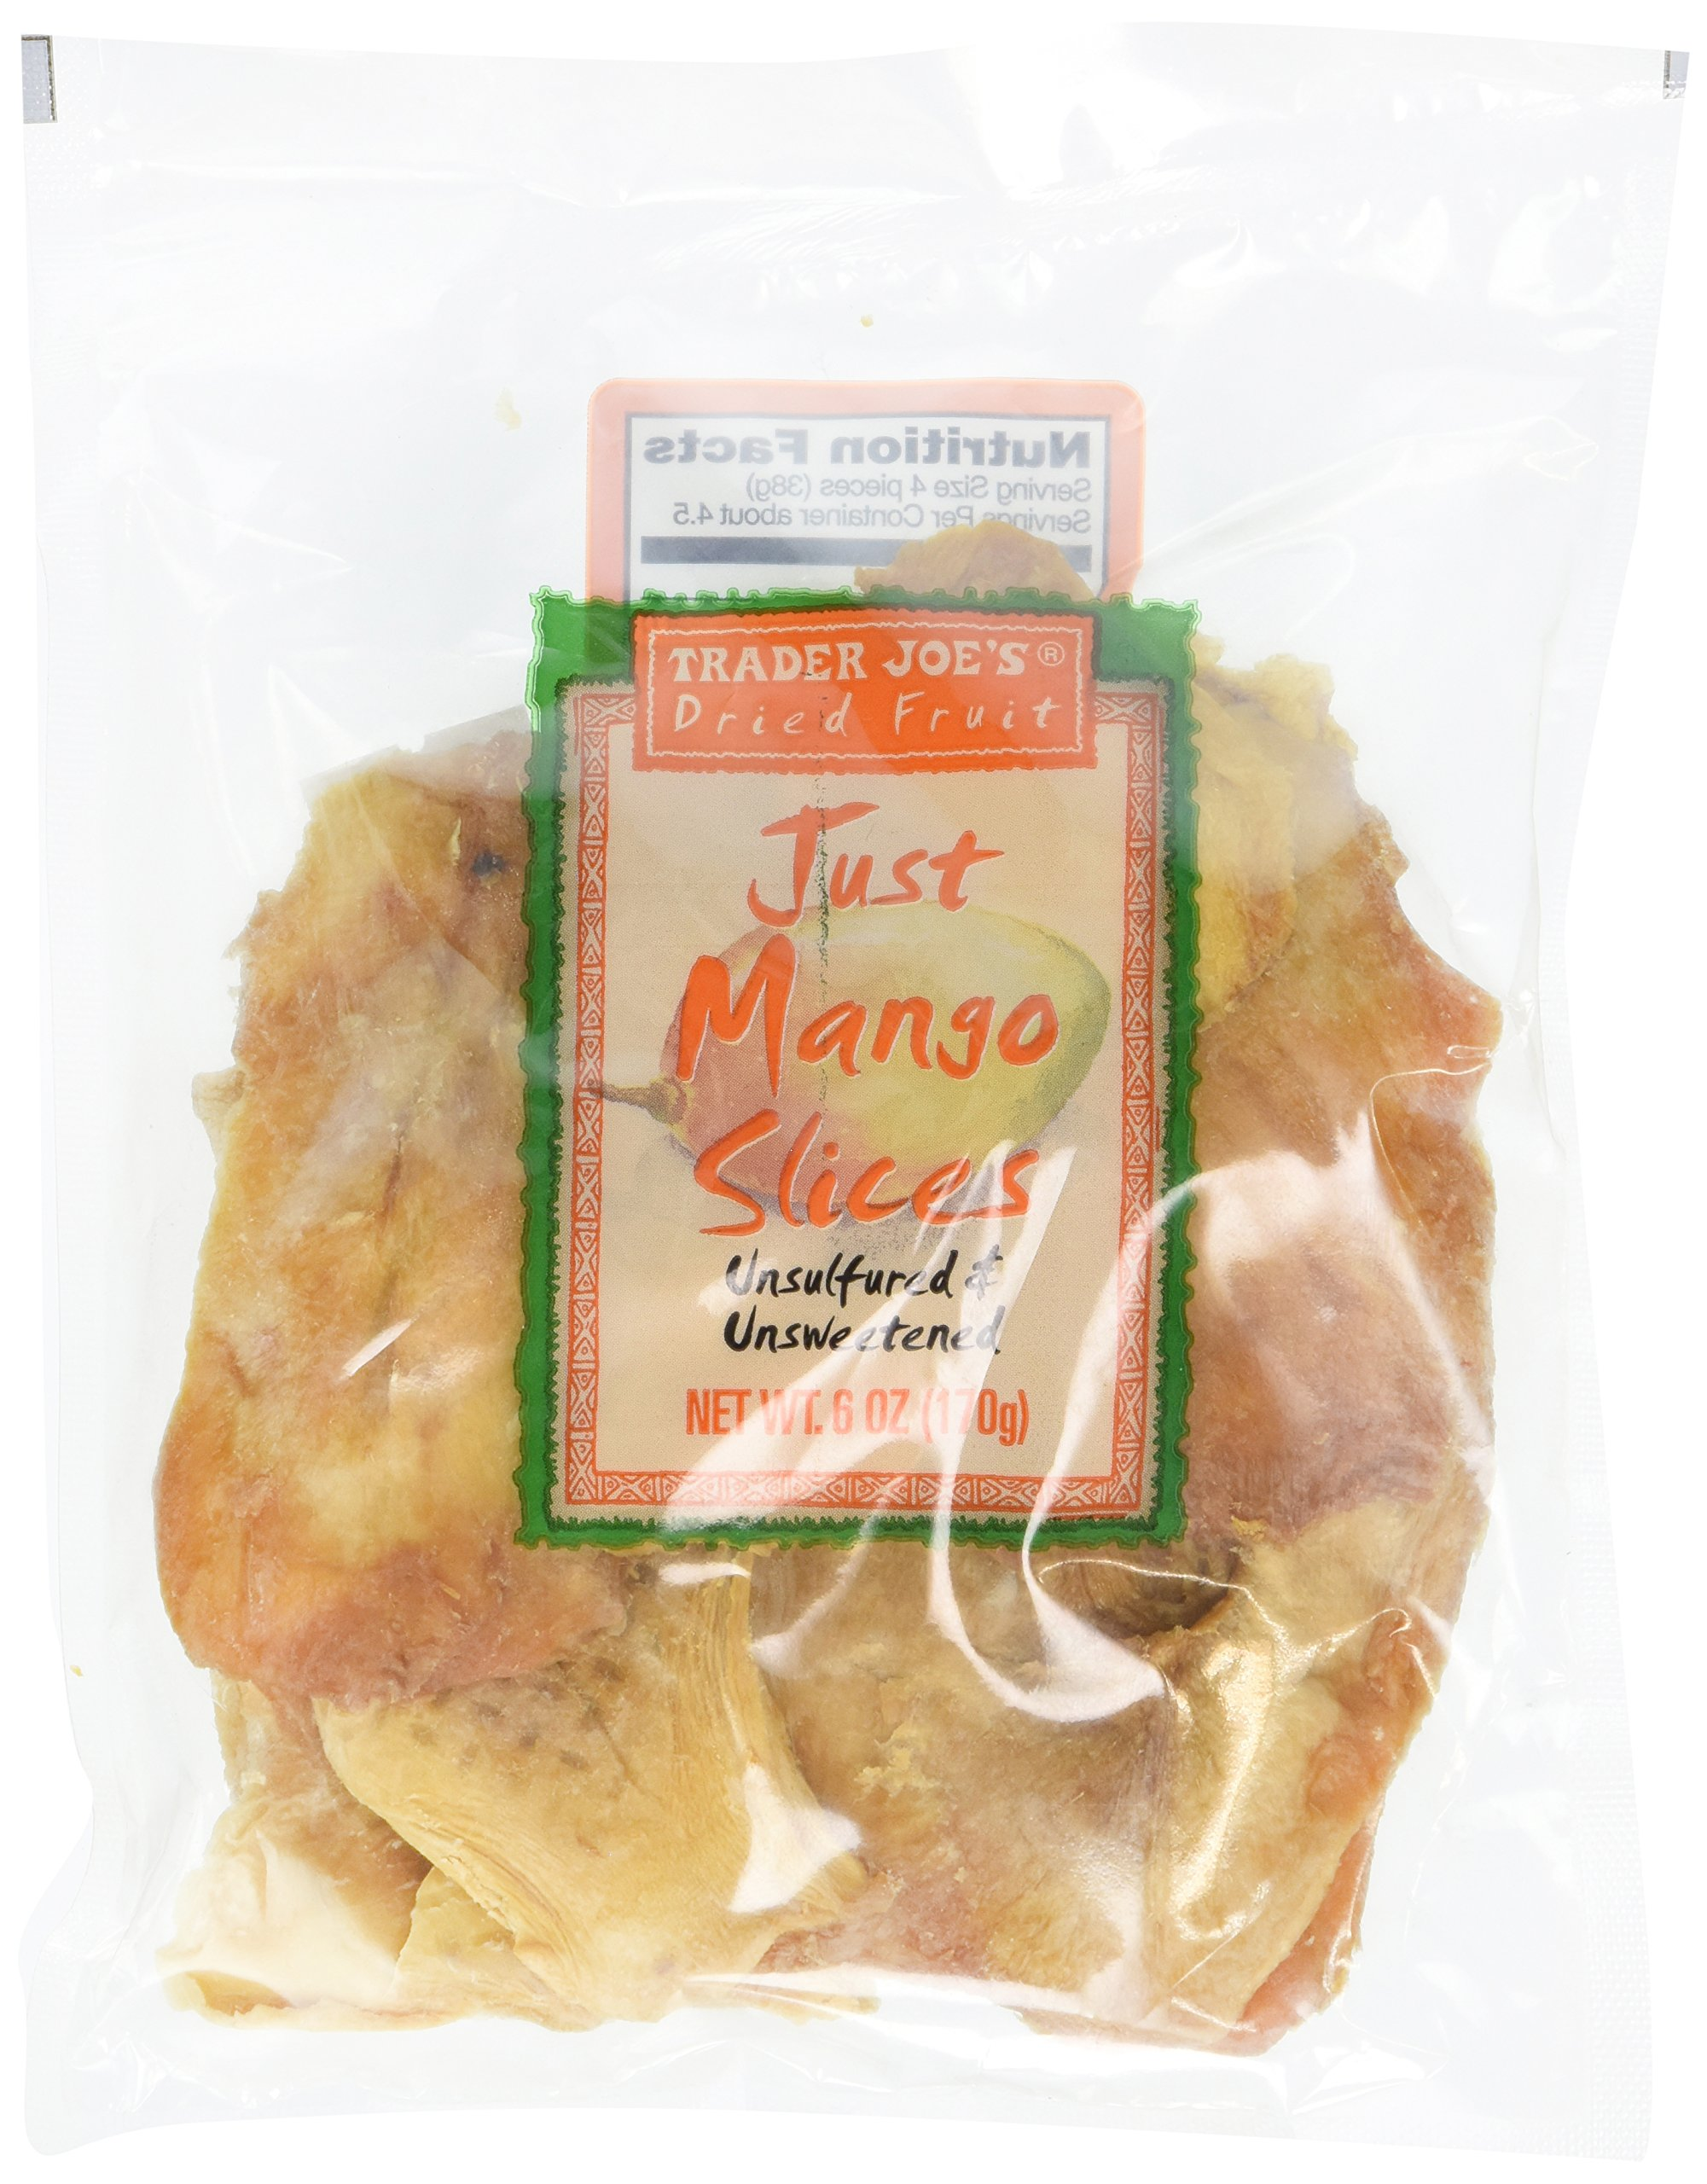 Trader Joe's Dried Fruit Just Mango Slices 6 ounces (Pack of 4) by Trader Joe's (Image #1)